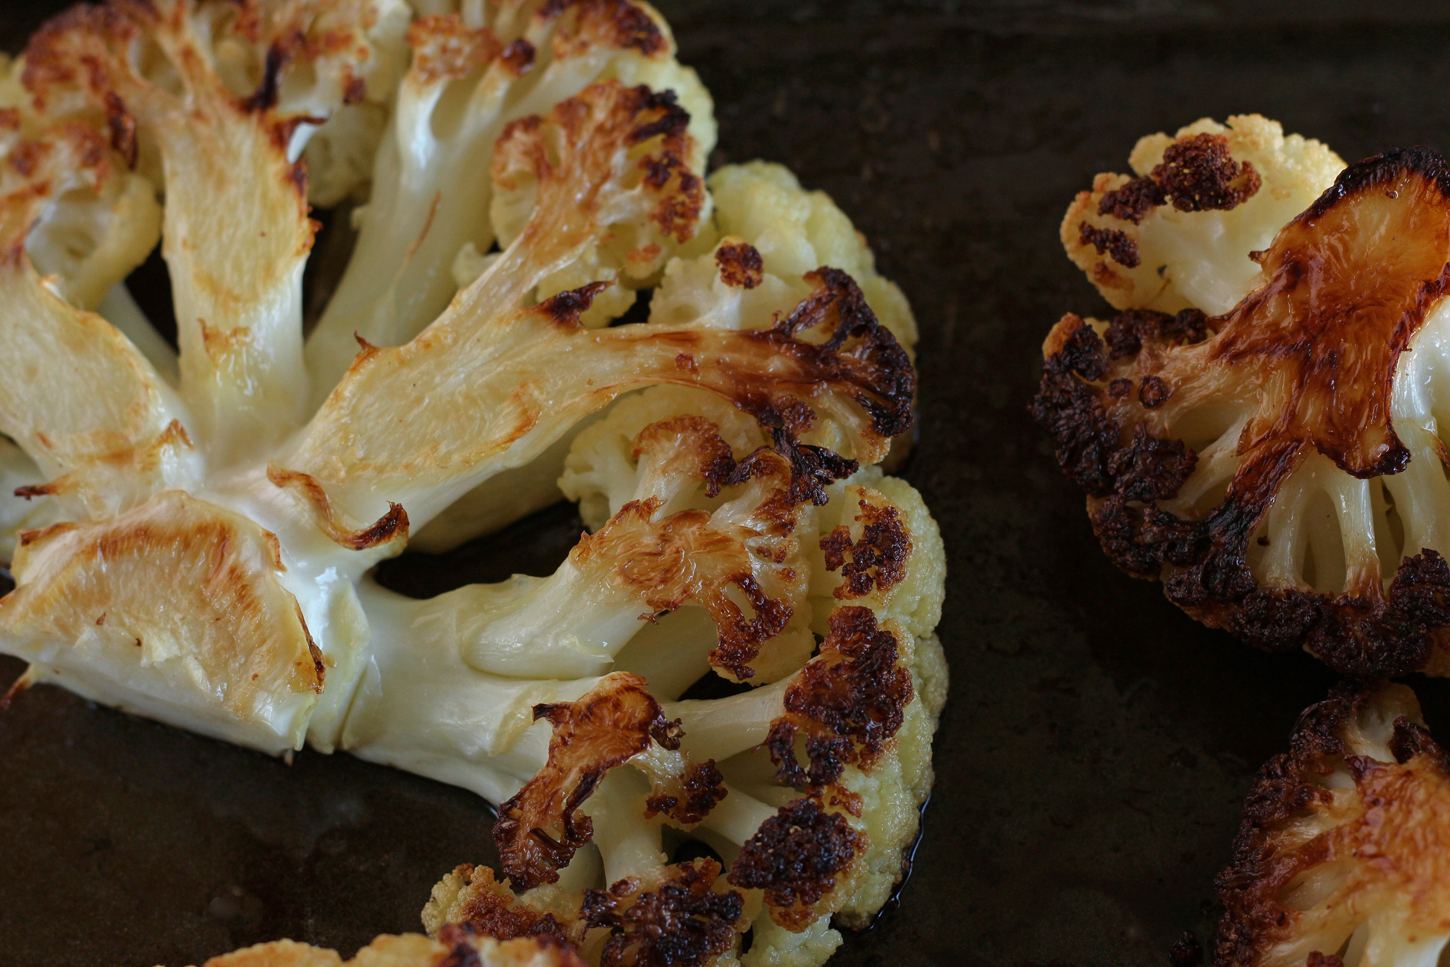 Roasted cauliflower without sumac